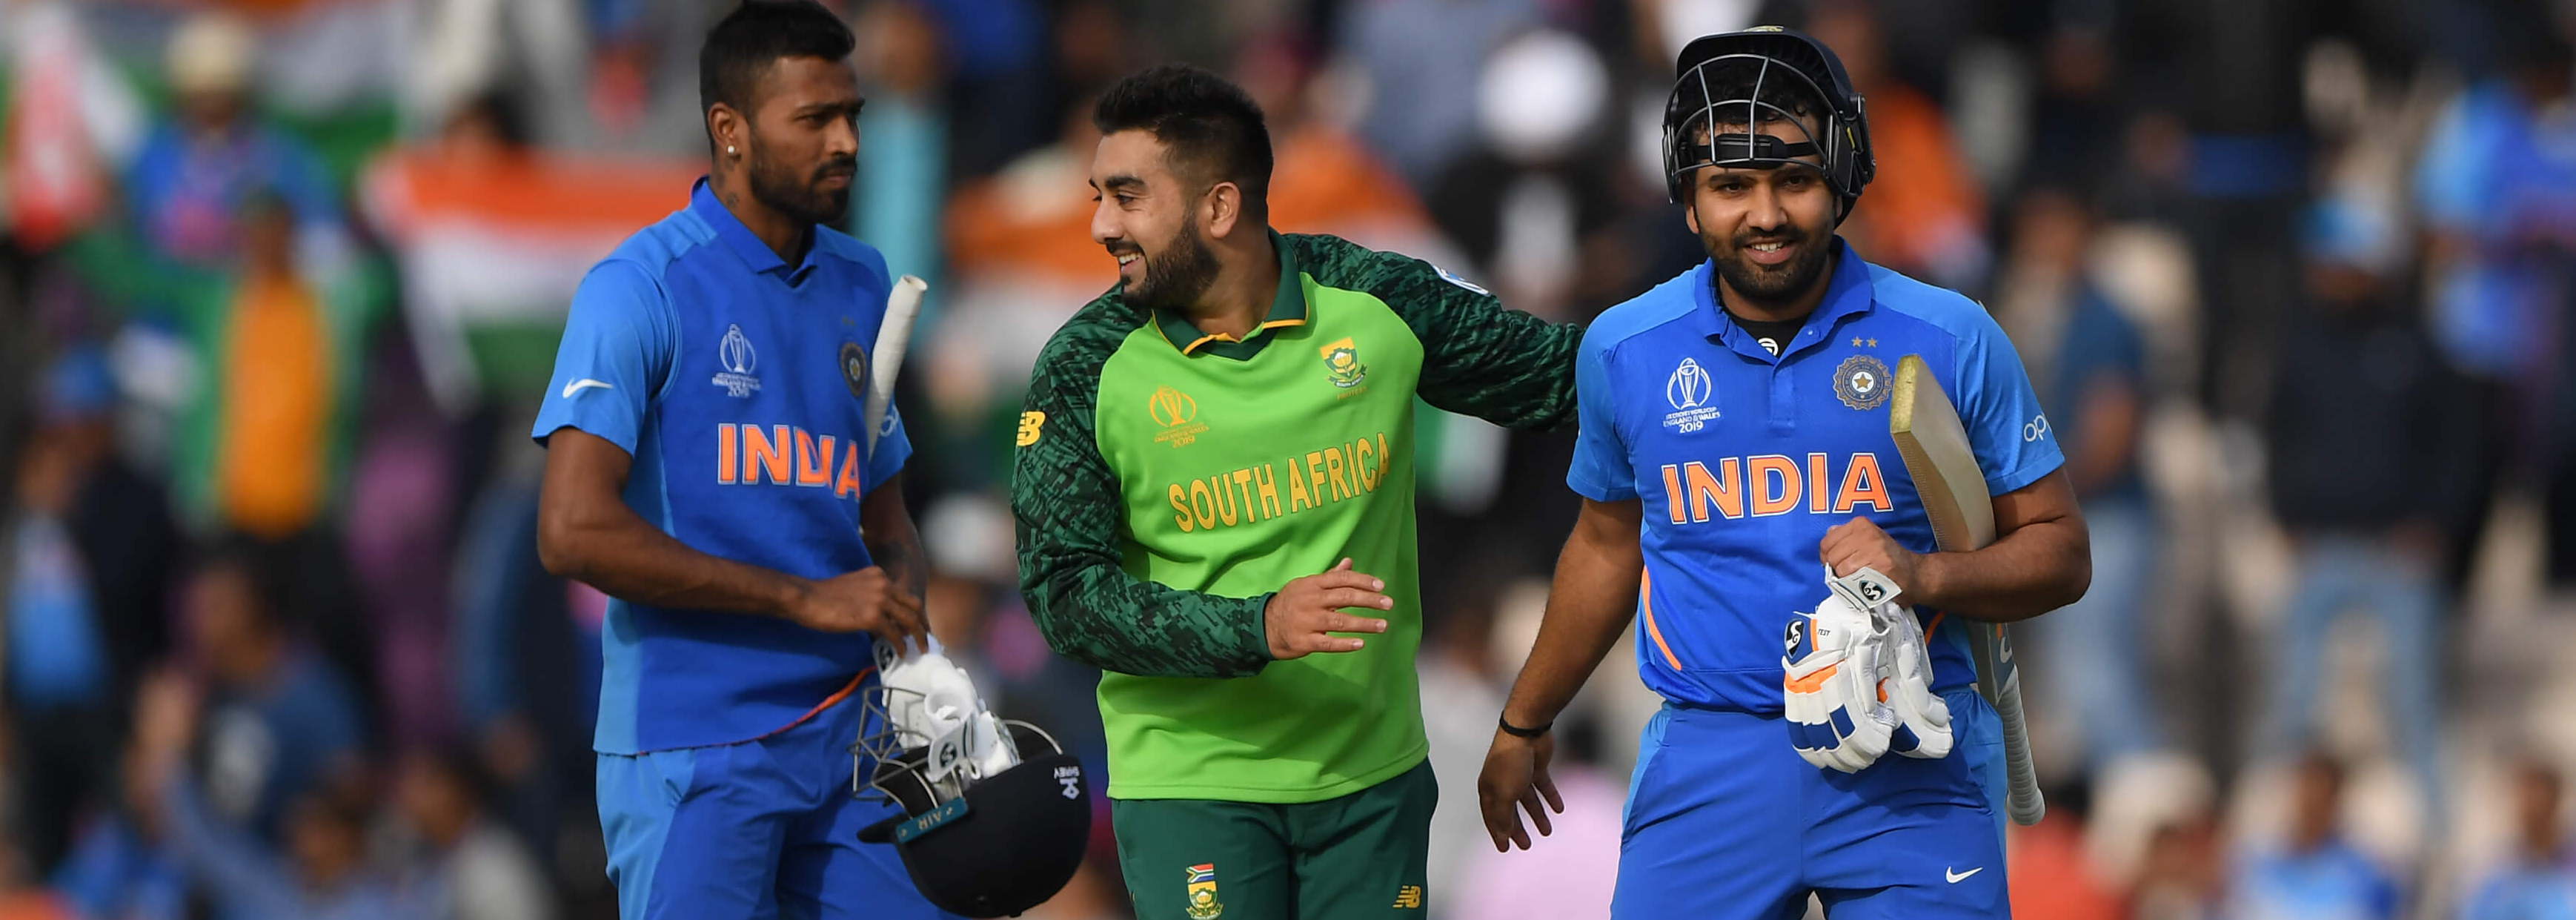 South Africa tour of India 2019 - Series Details